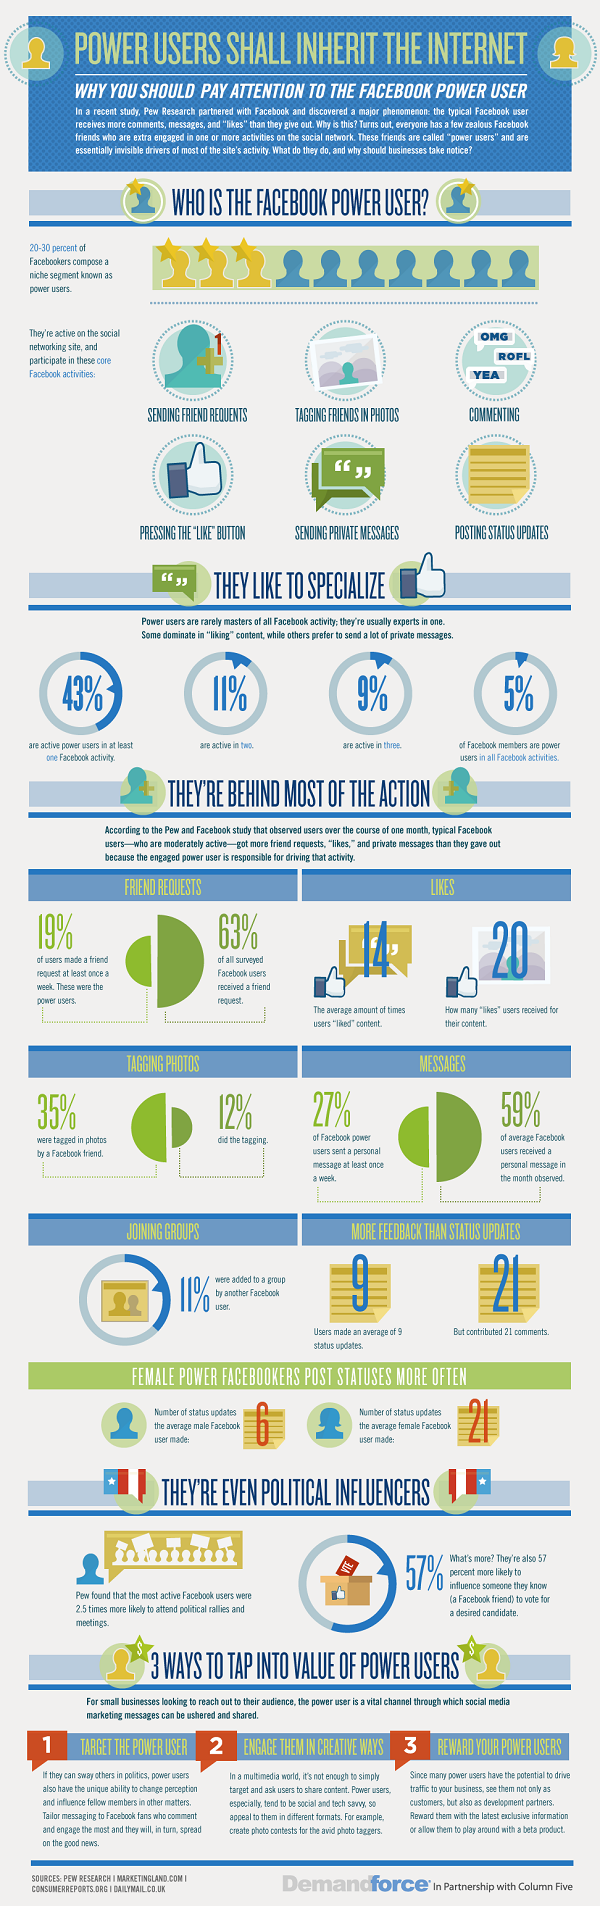 Facebook Power Users. A Look Inside The Facebook Addiction [Infographic]